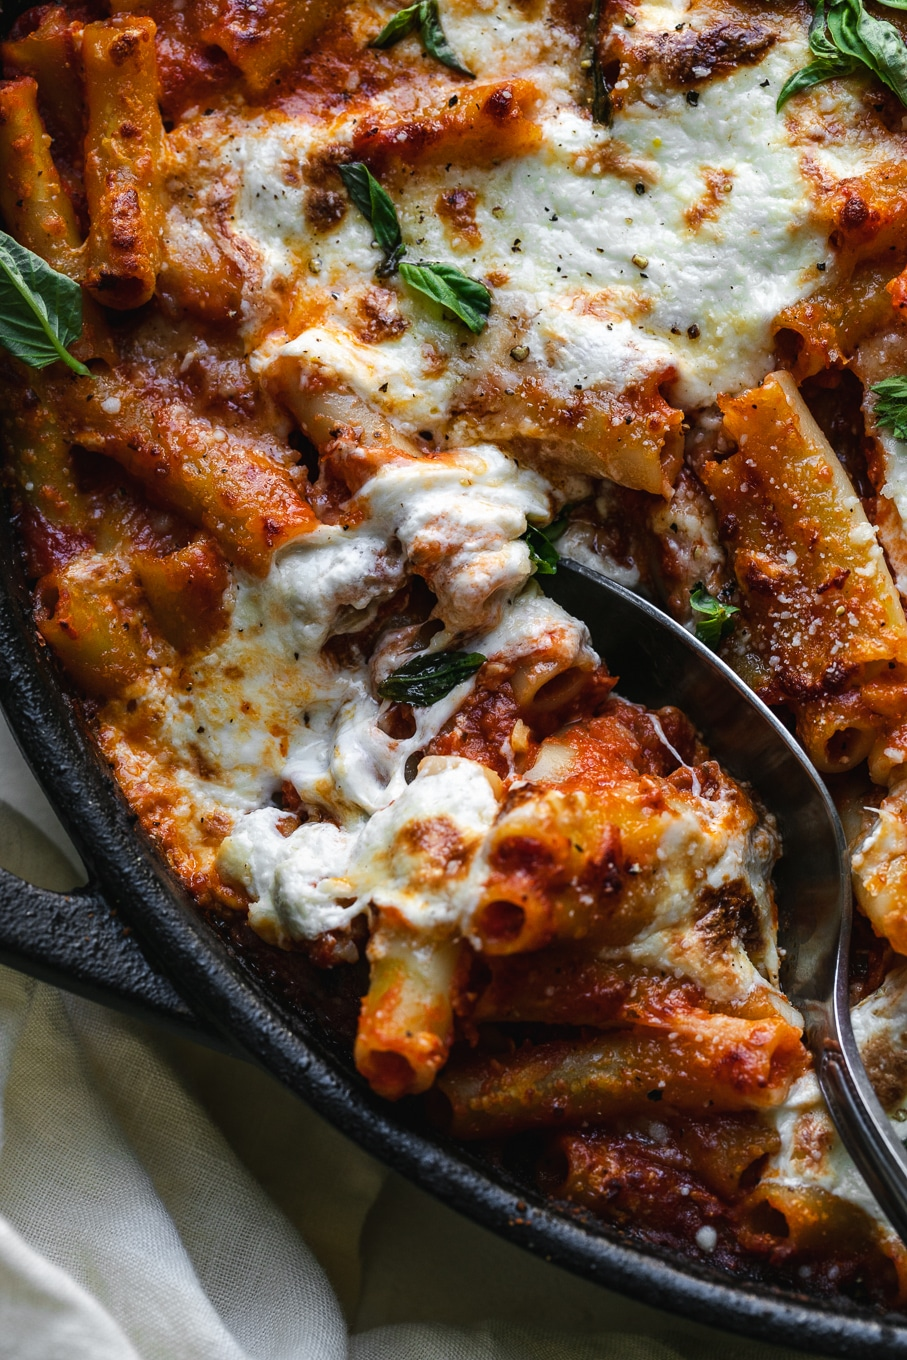 Close up shot of a skillet of baked pasta with a spoon digging in